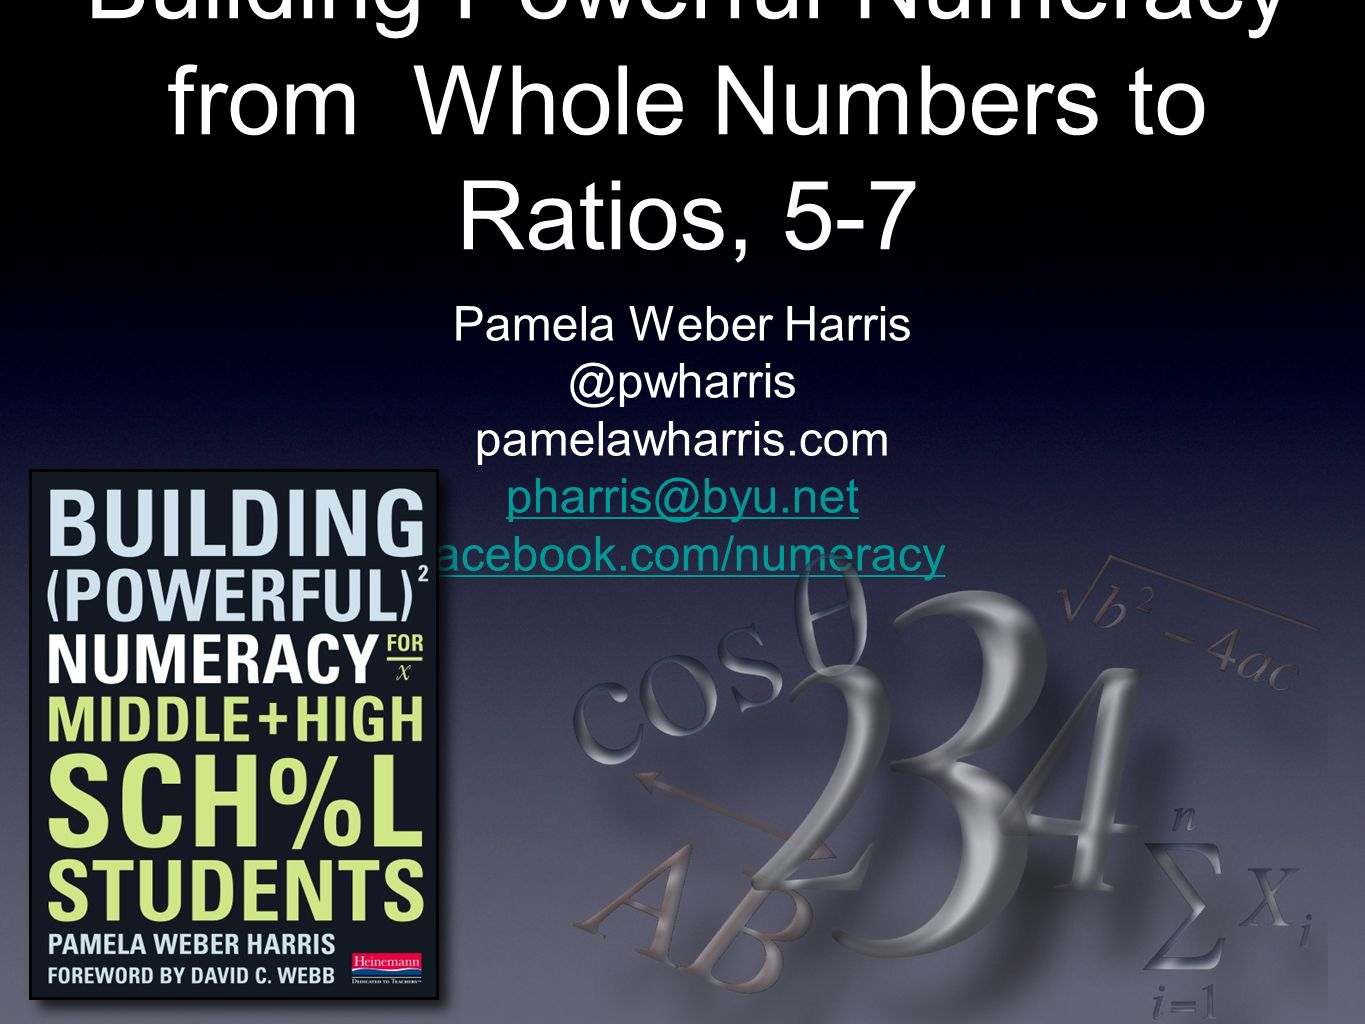 Building Powerful Numeracy from Whole Numbers to Ratios, 5-7 Pamela Weber Harris @pwharris pamelawharris.com pharris@byu.net facebook.com/numeracy